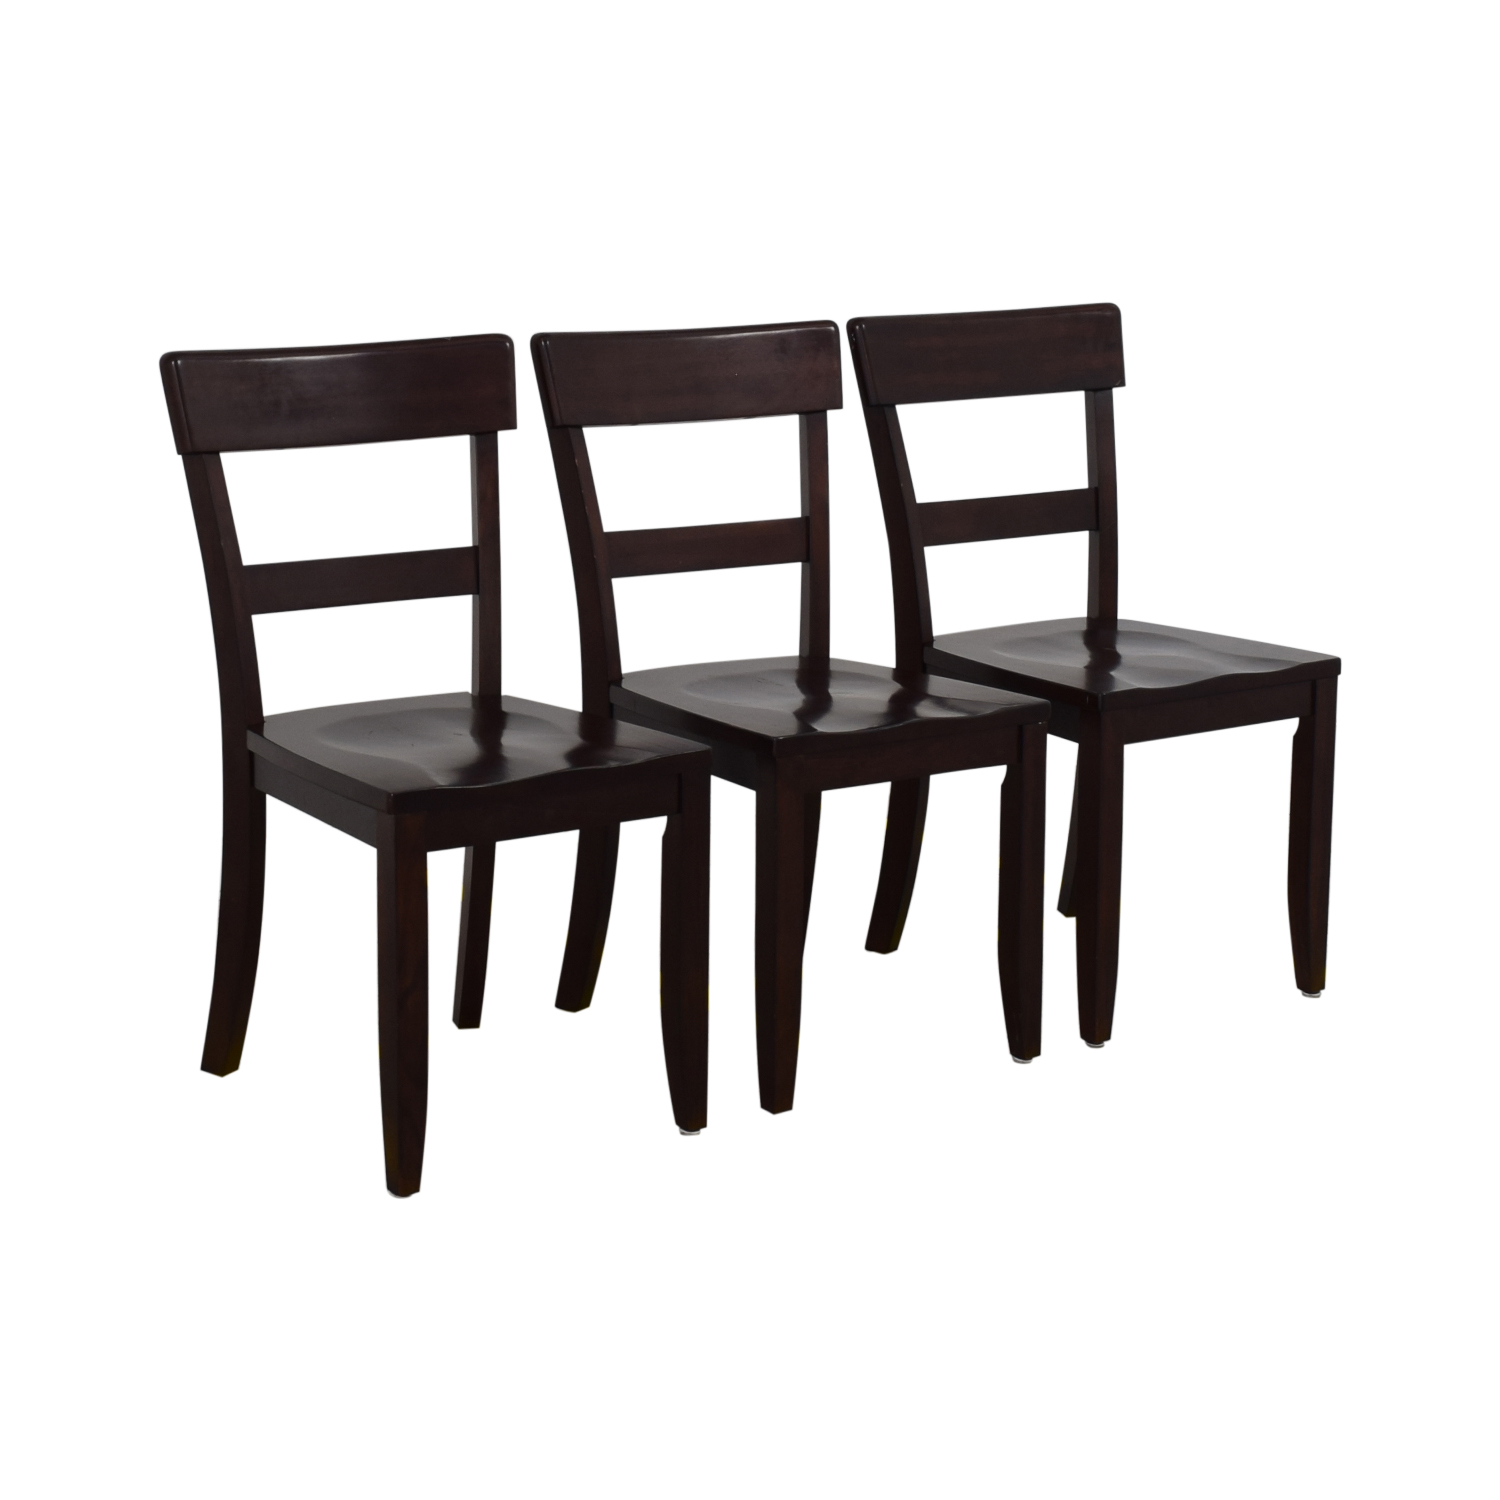 76% OFF   Pottery Barn Pottery Barn Metropolitan Dining Chairs / Chairs